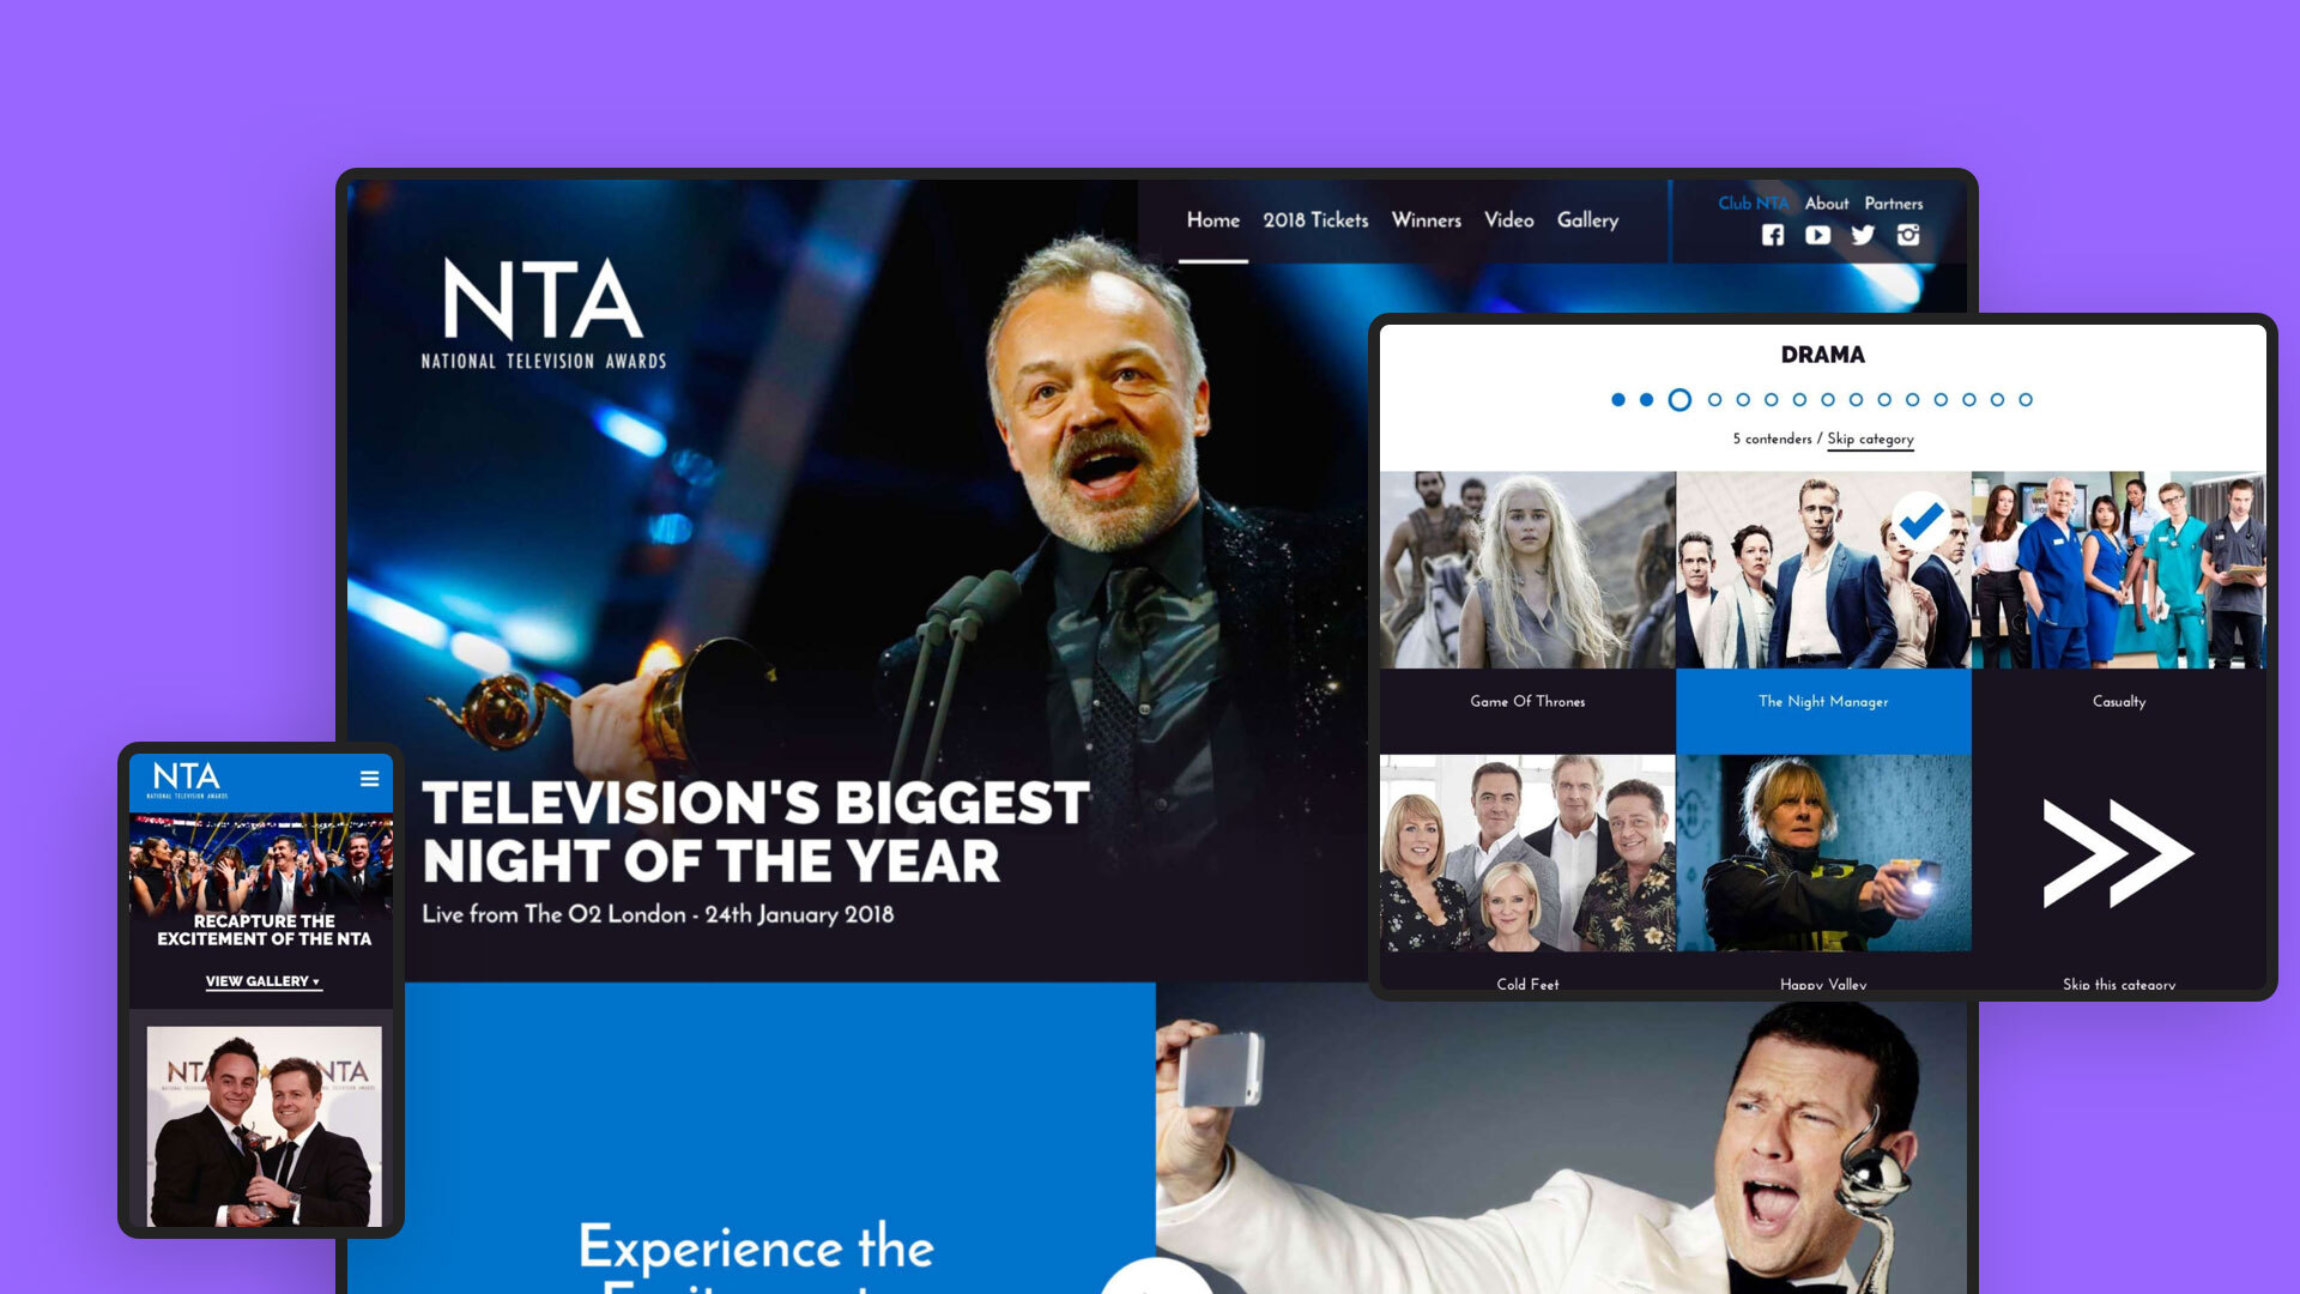 We've helped run the massive online vote for the National Television Awards since 2009, registering millions of submissions every year